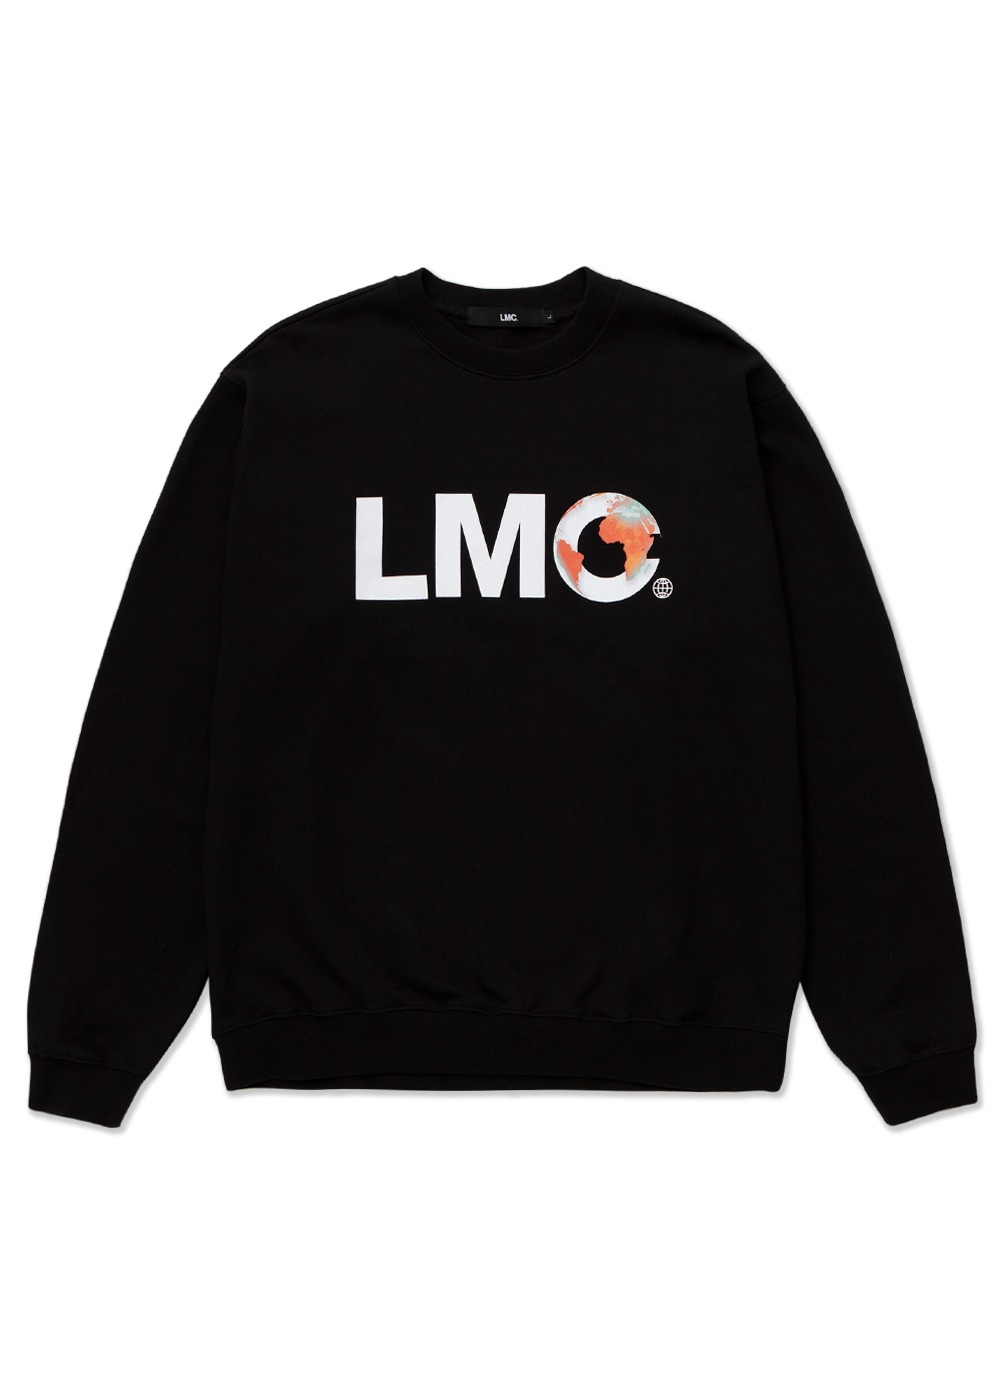 LMC EARTH LOGO SWEATSHIRT black